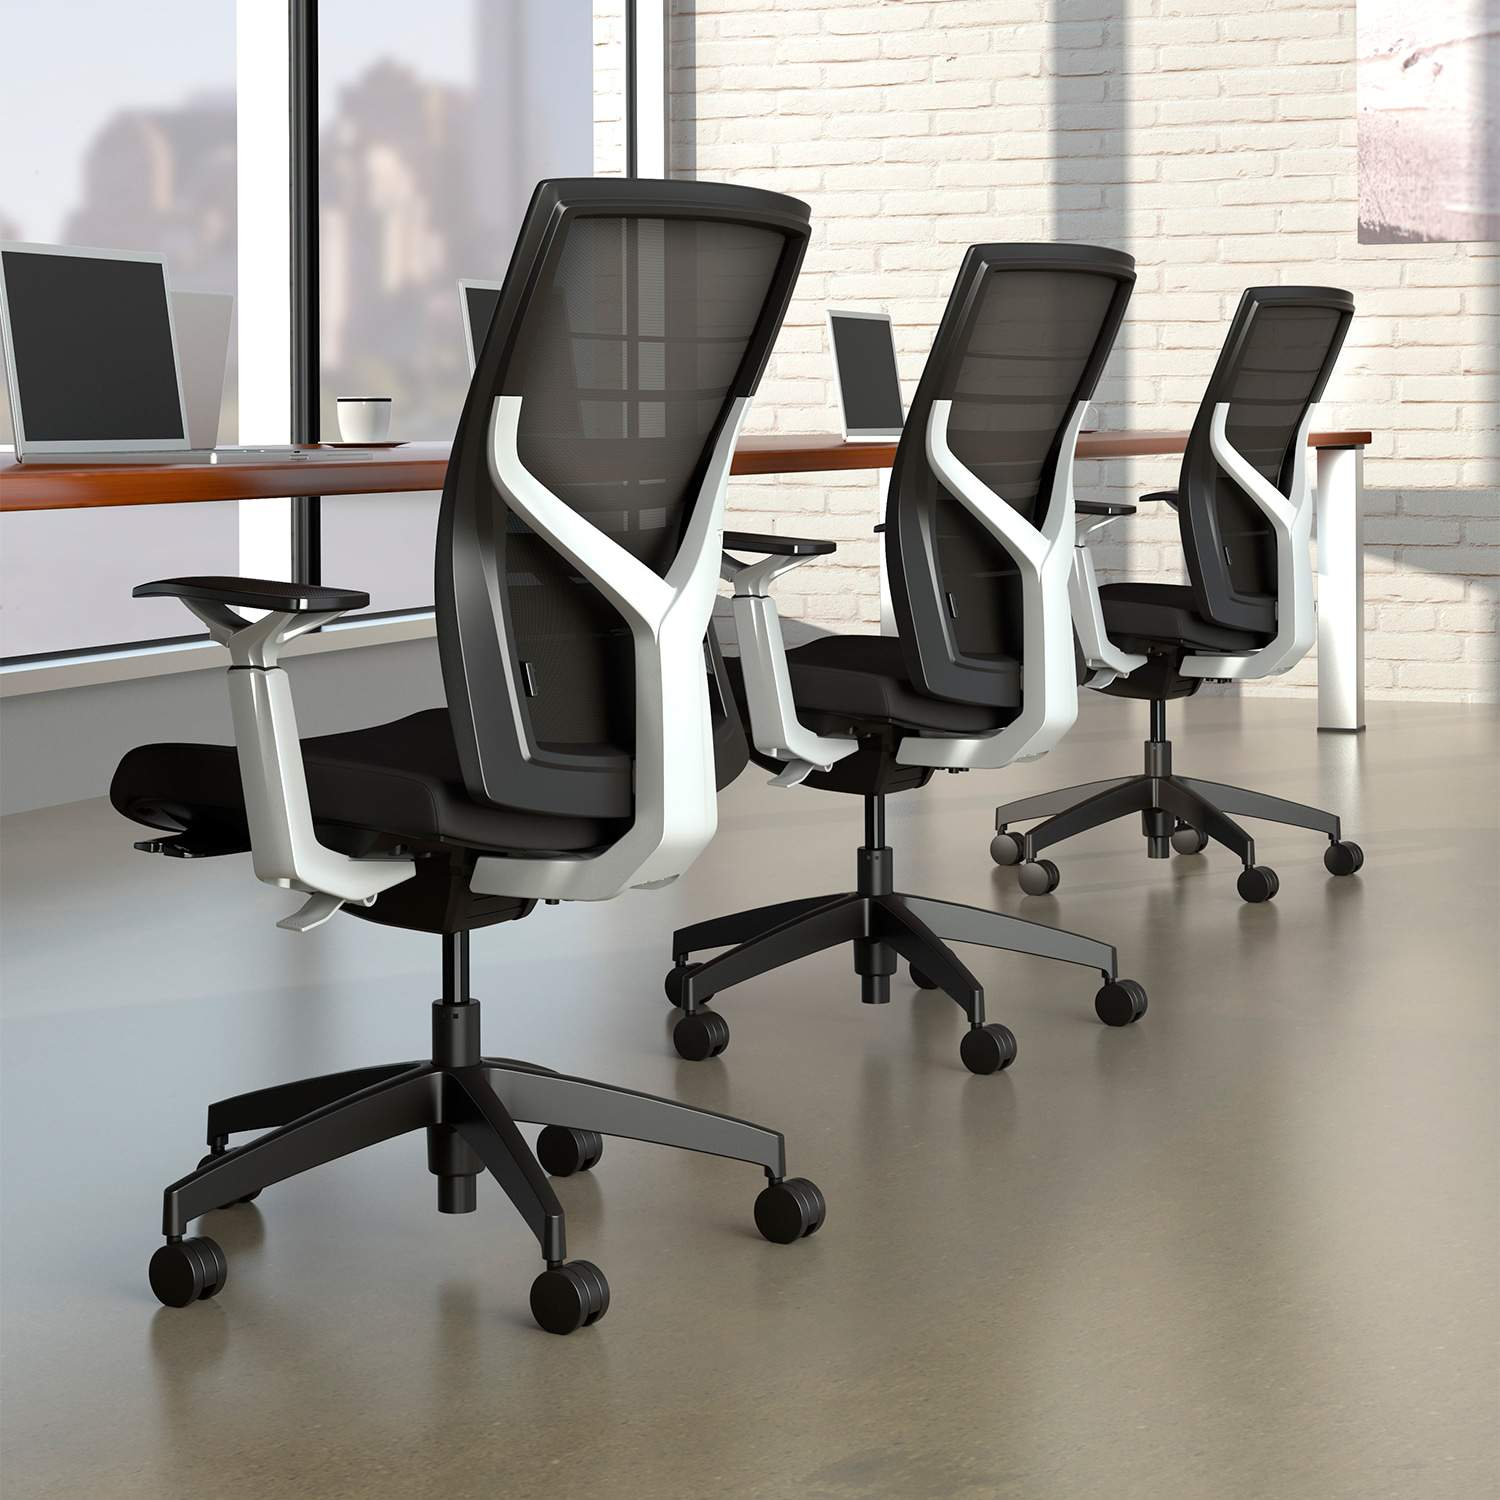 Sit On It Chairs Finding The Best Ergonomic Office Chair Systems Furniture